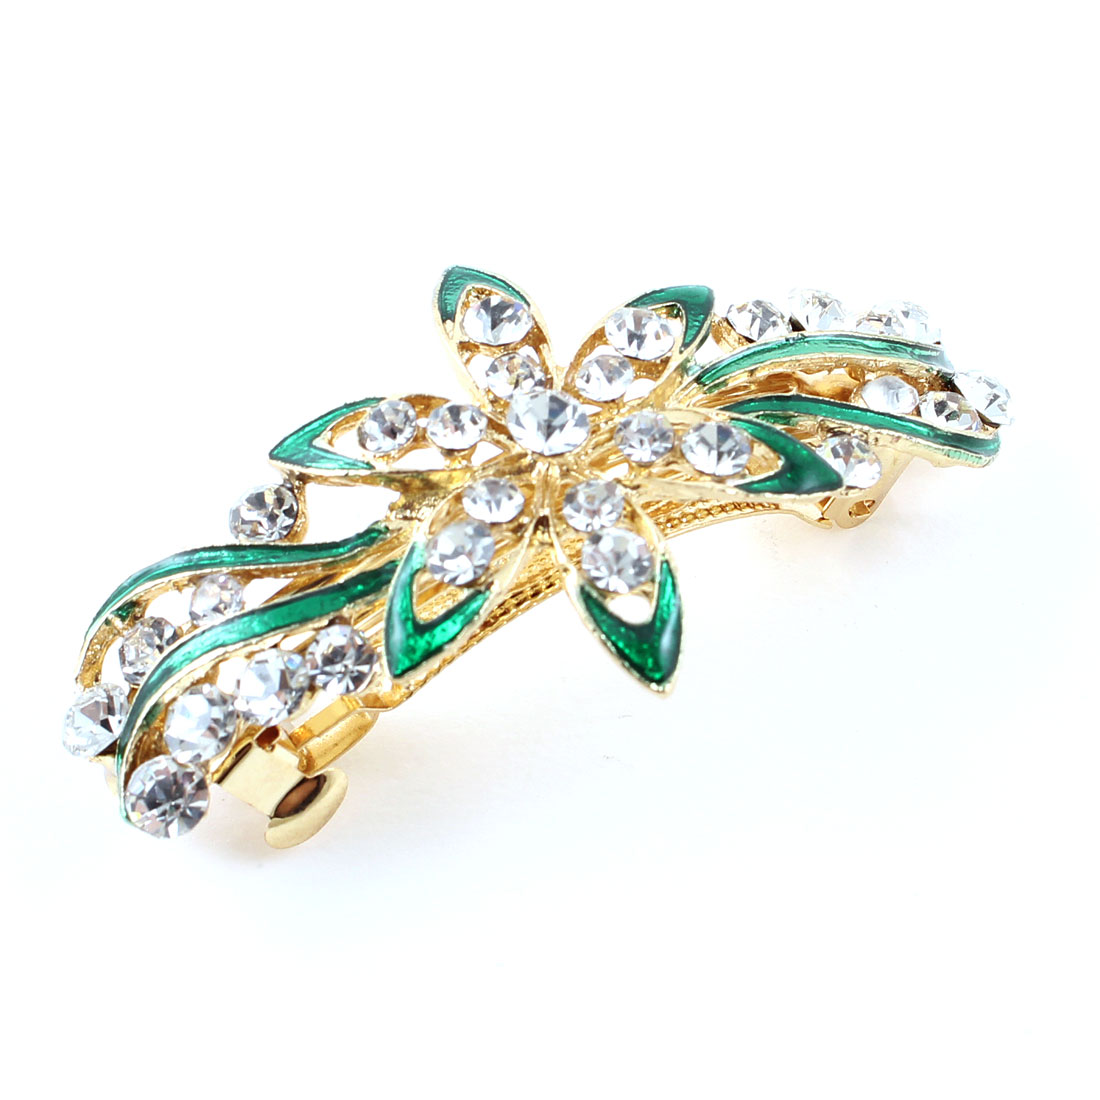 Lady Green Flower Design Rhinestone French Hair Clip Hairpin